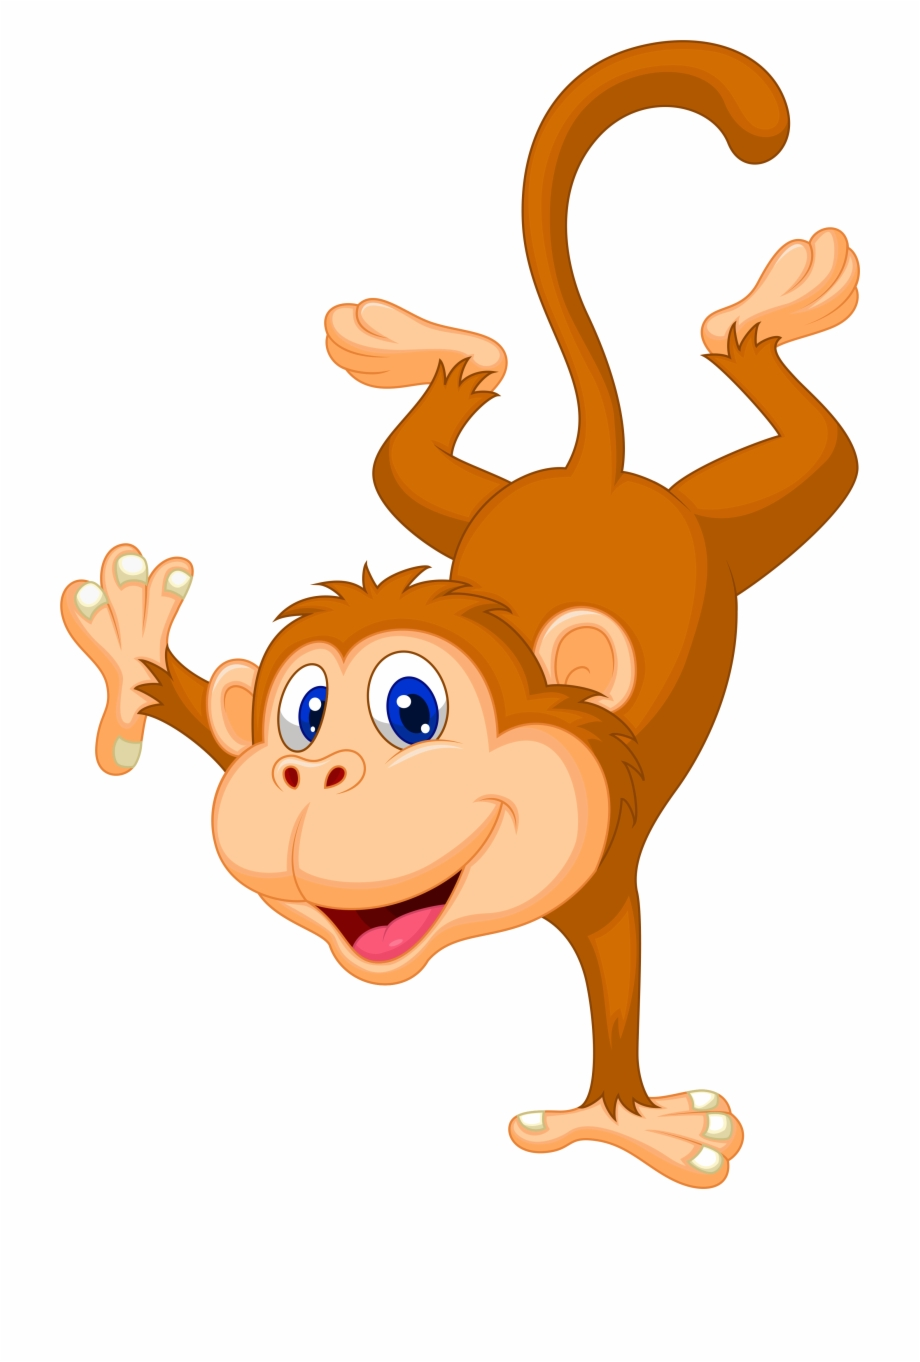 Monkey clipart png clip art royalty free stock Monkeys Clipart Transparent Background - Transparent ... clip art royalty free stock